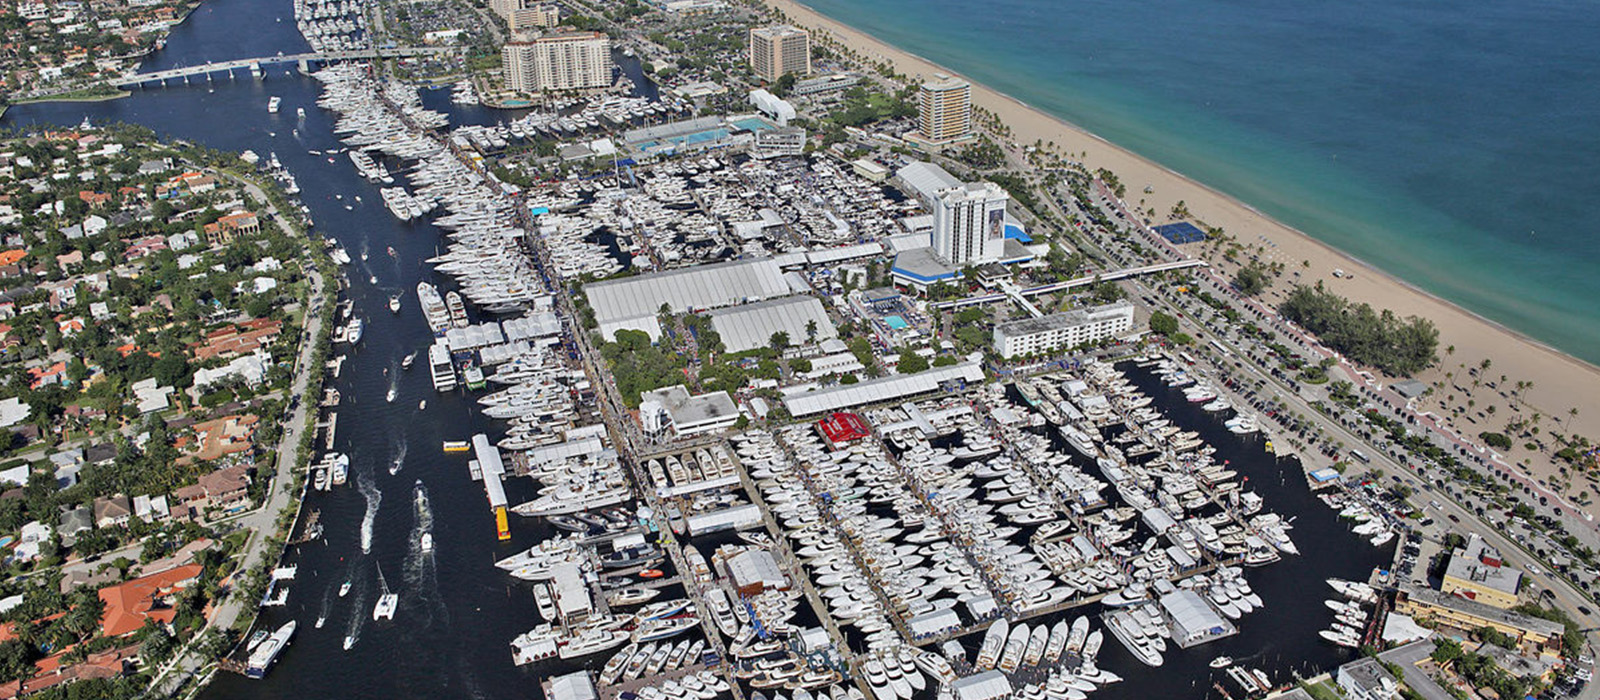 Flibs-International-Fort-Lauderdale-Boat-Show-Insurance-Brokerage-Superyacht-American-Florida.jpg